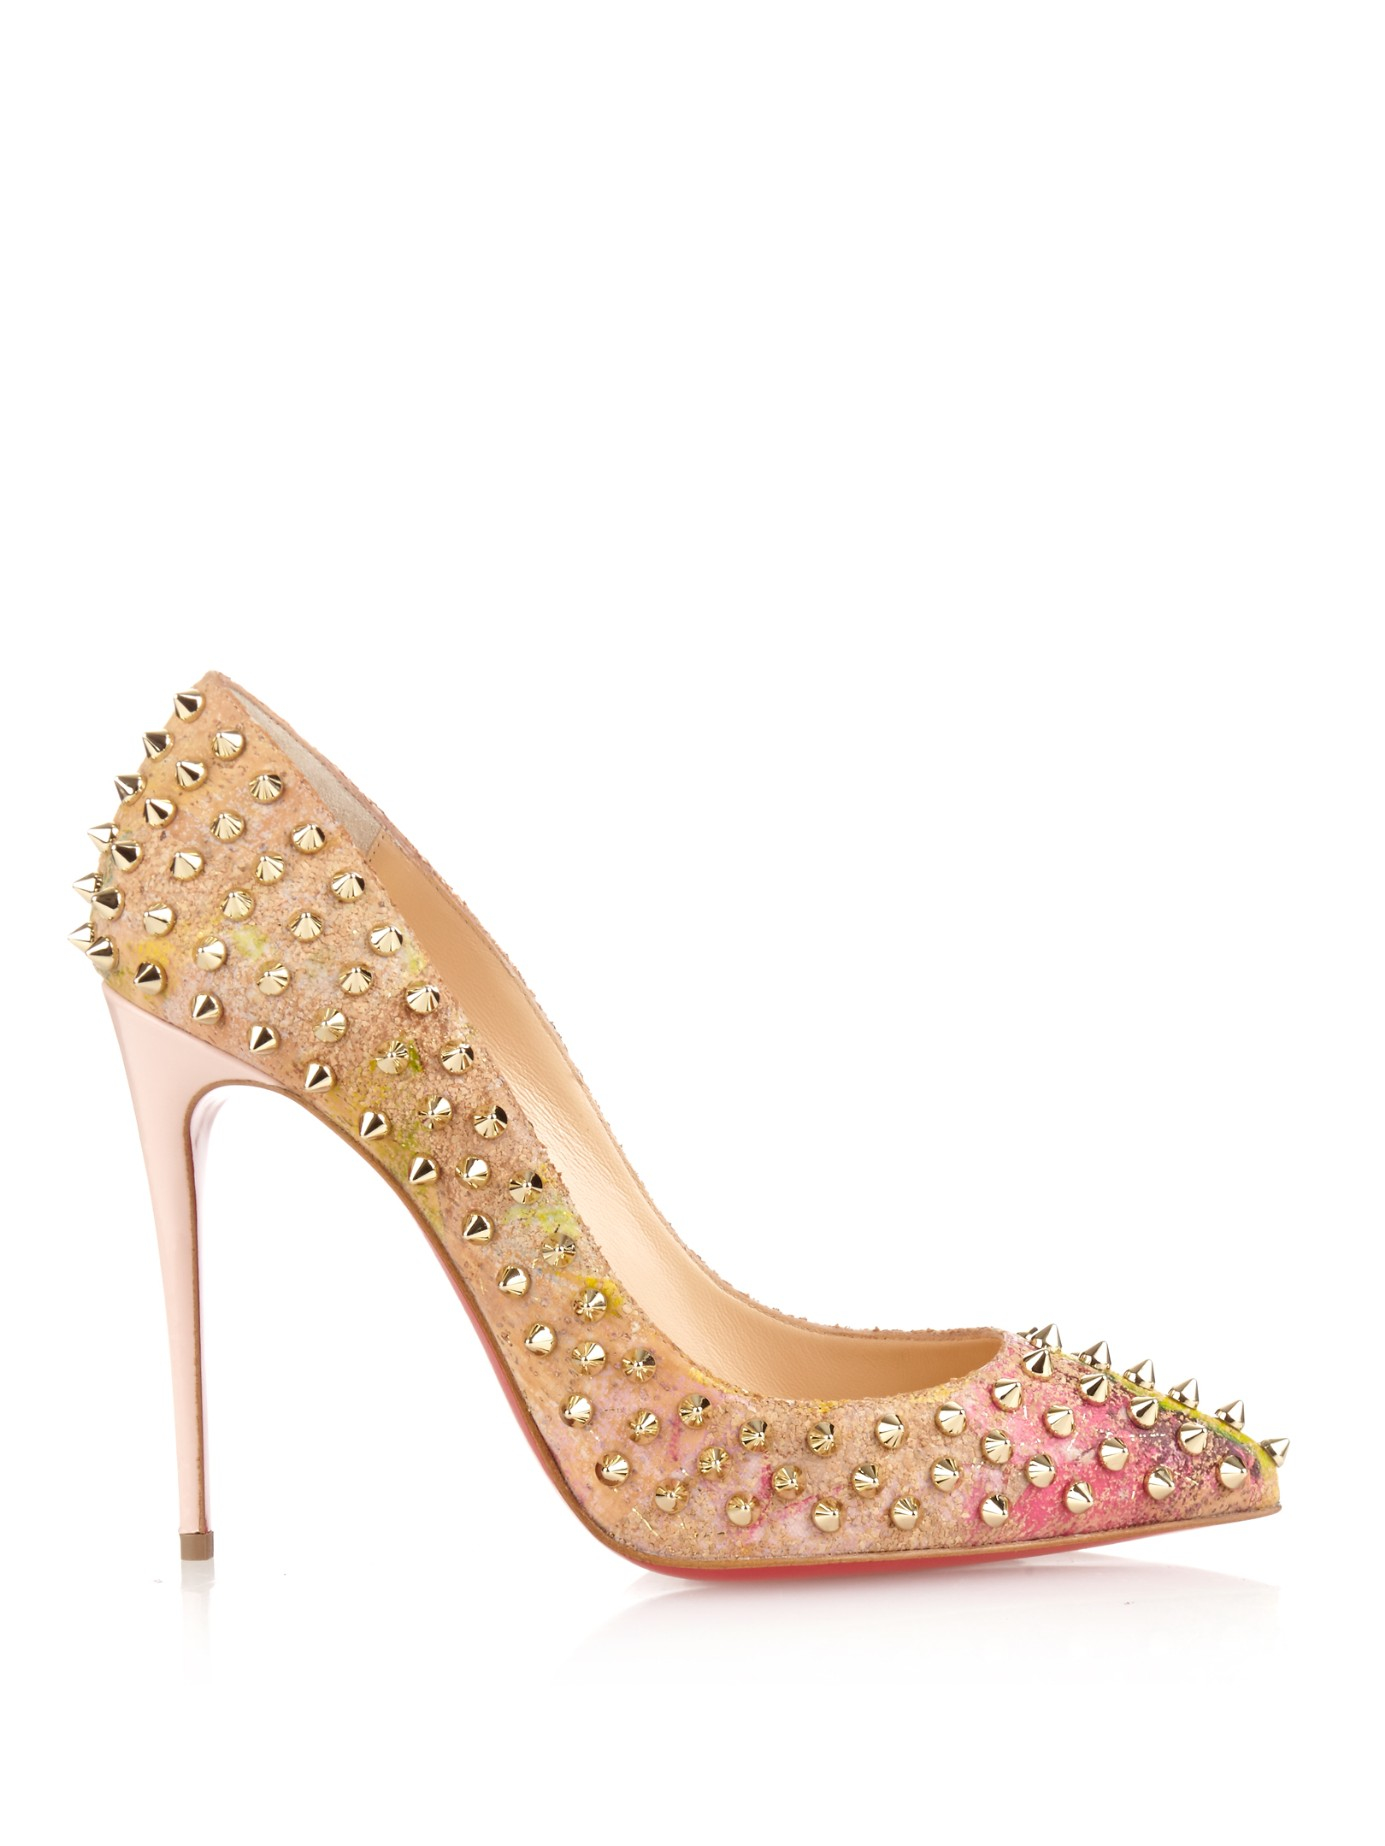 christian louboutin gold studded pumps